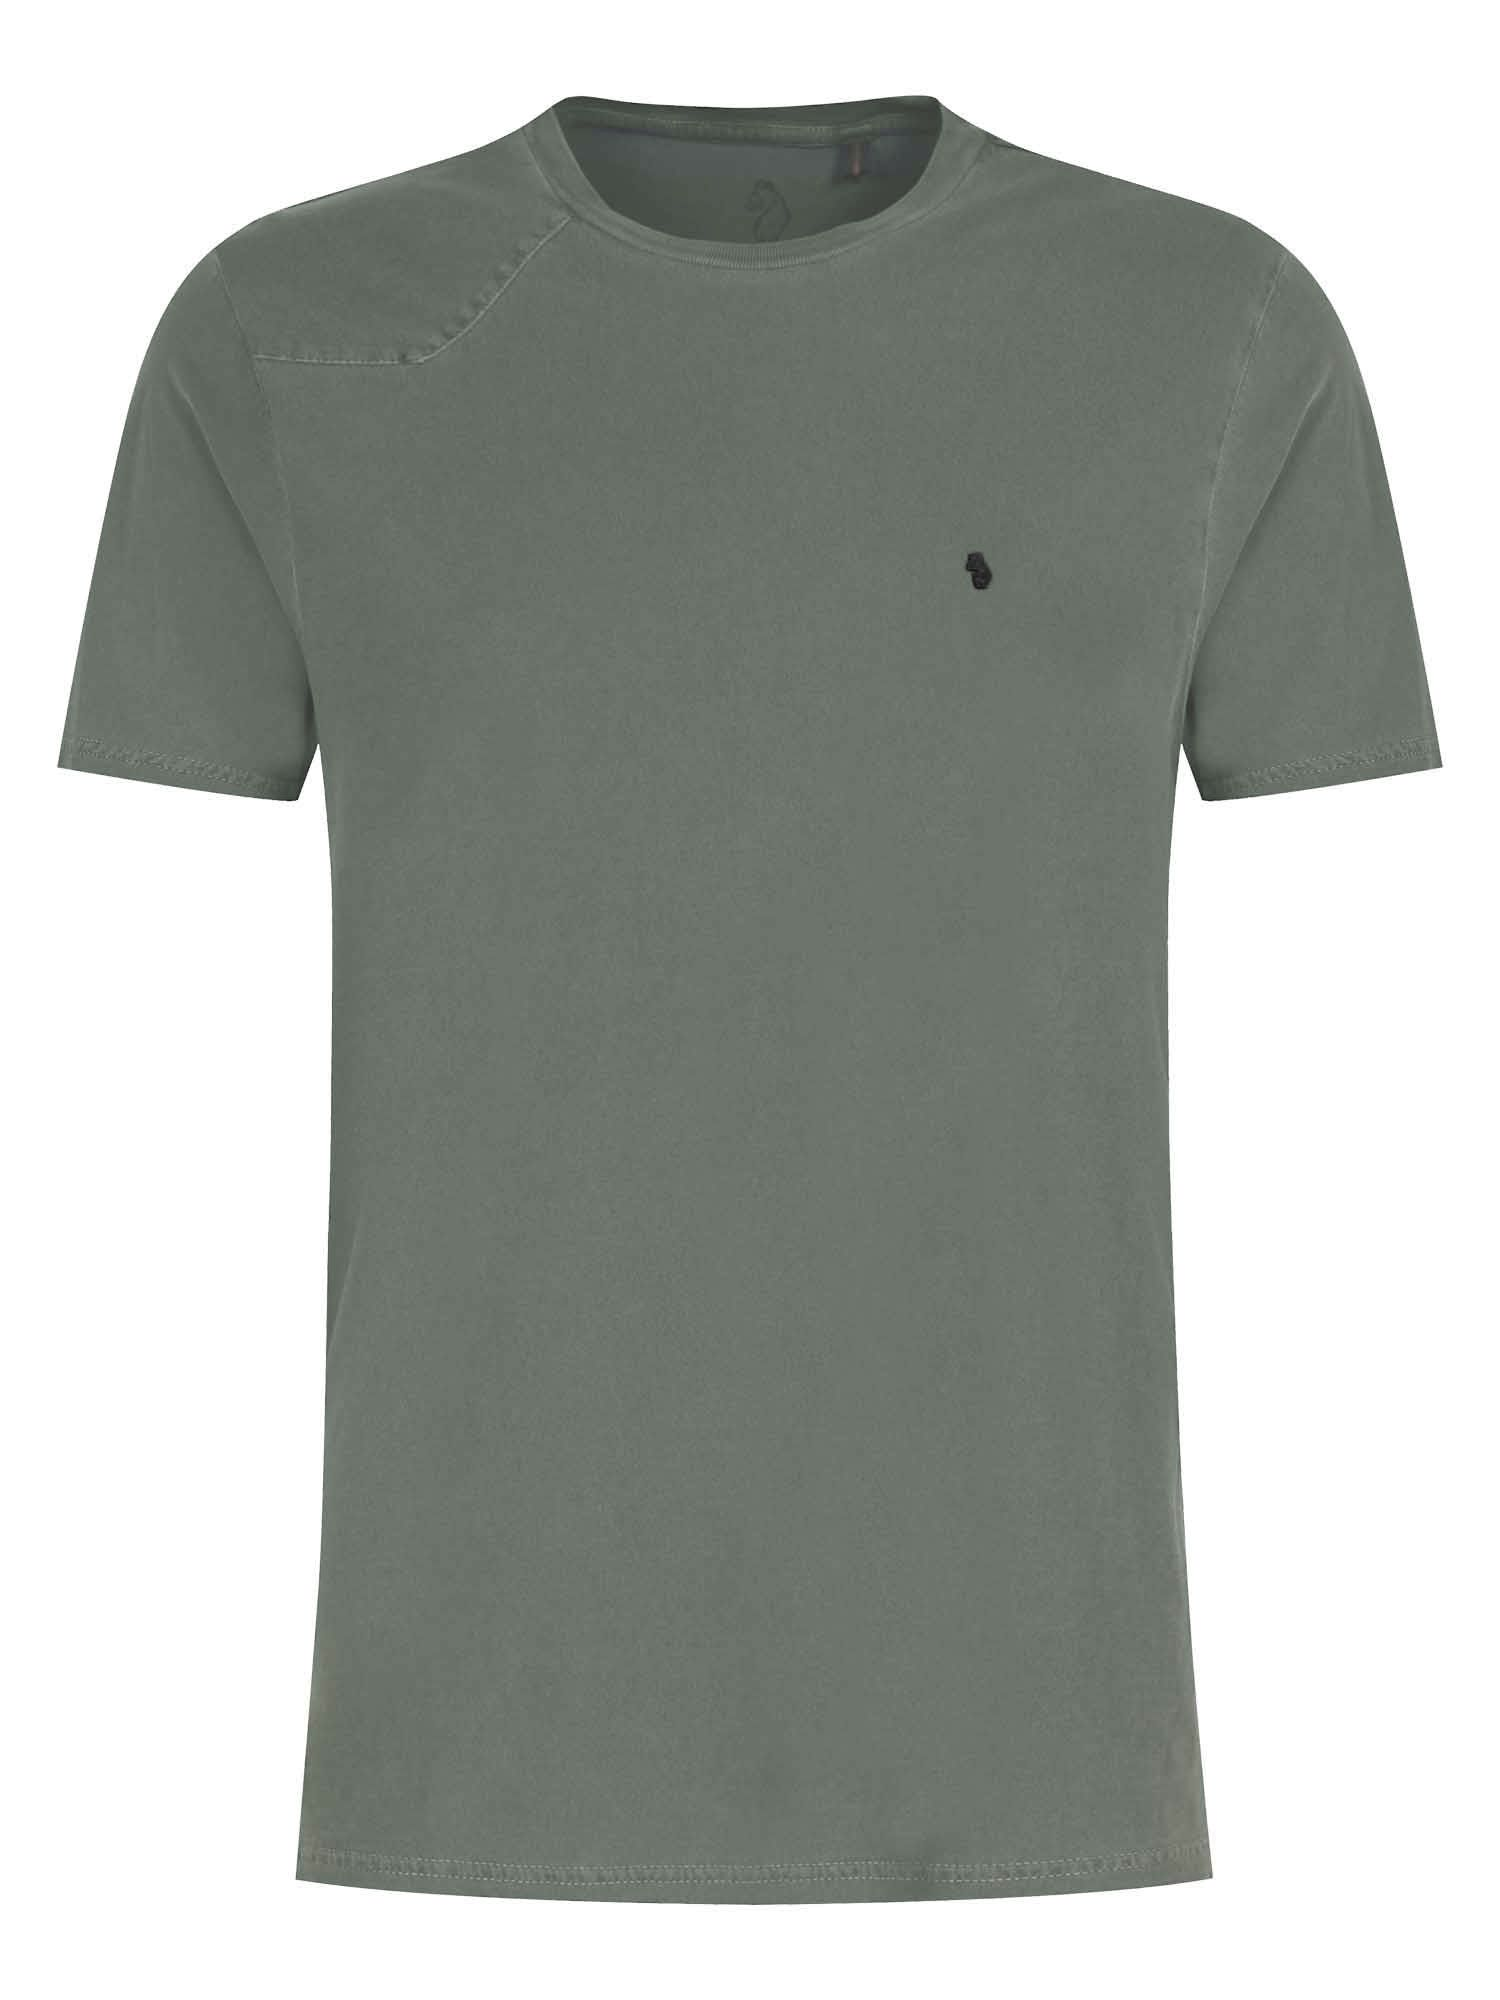 Men's Luke 1977 Hammerhead Dyed Crew Neck T-Shirt, Moss